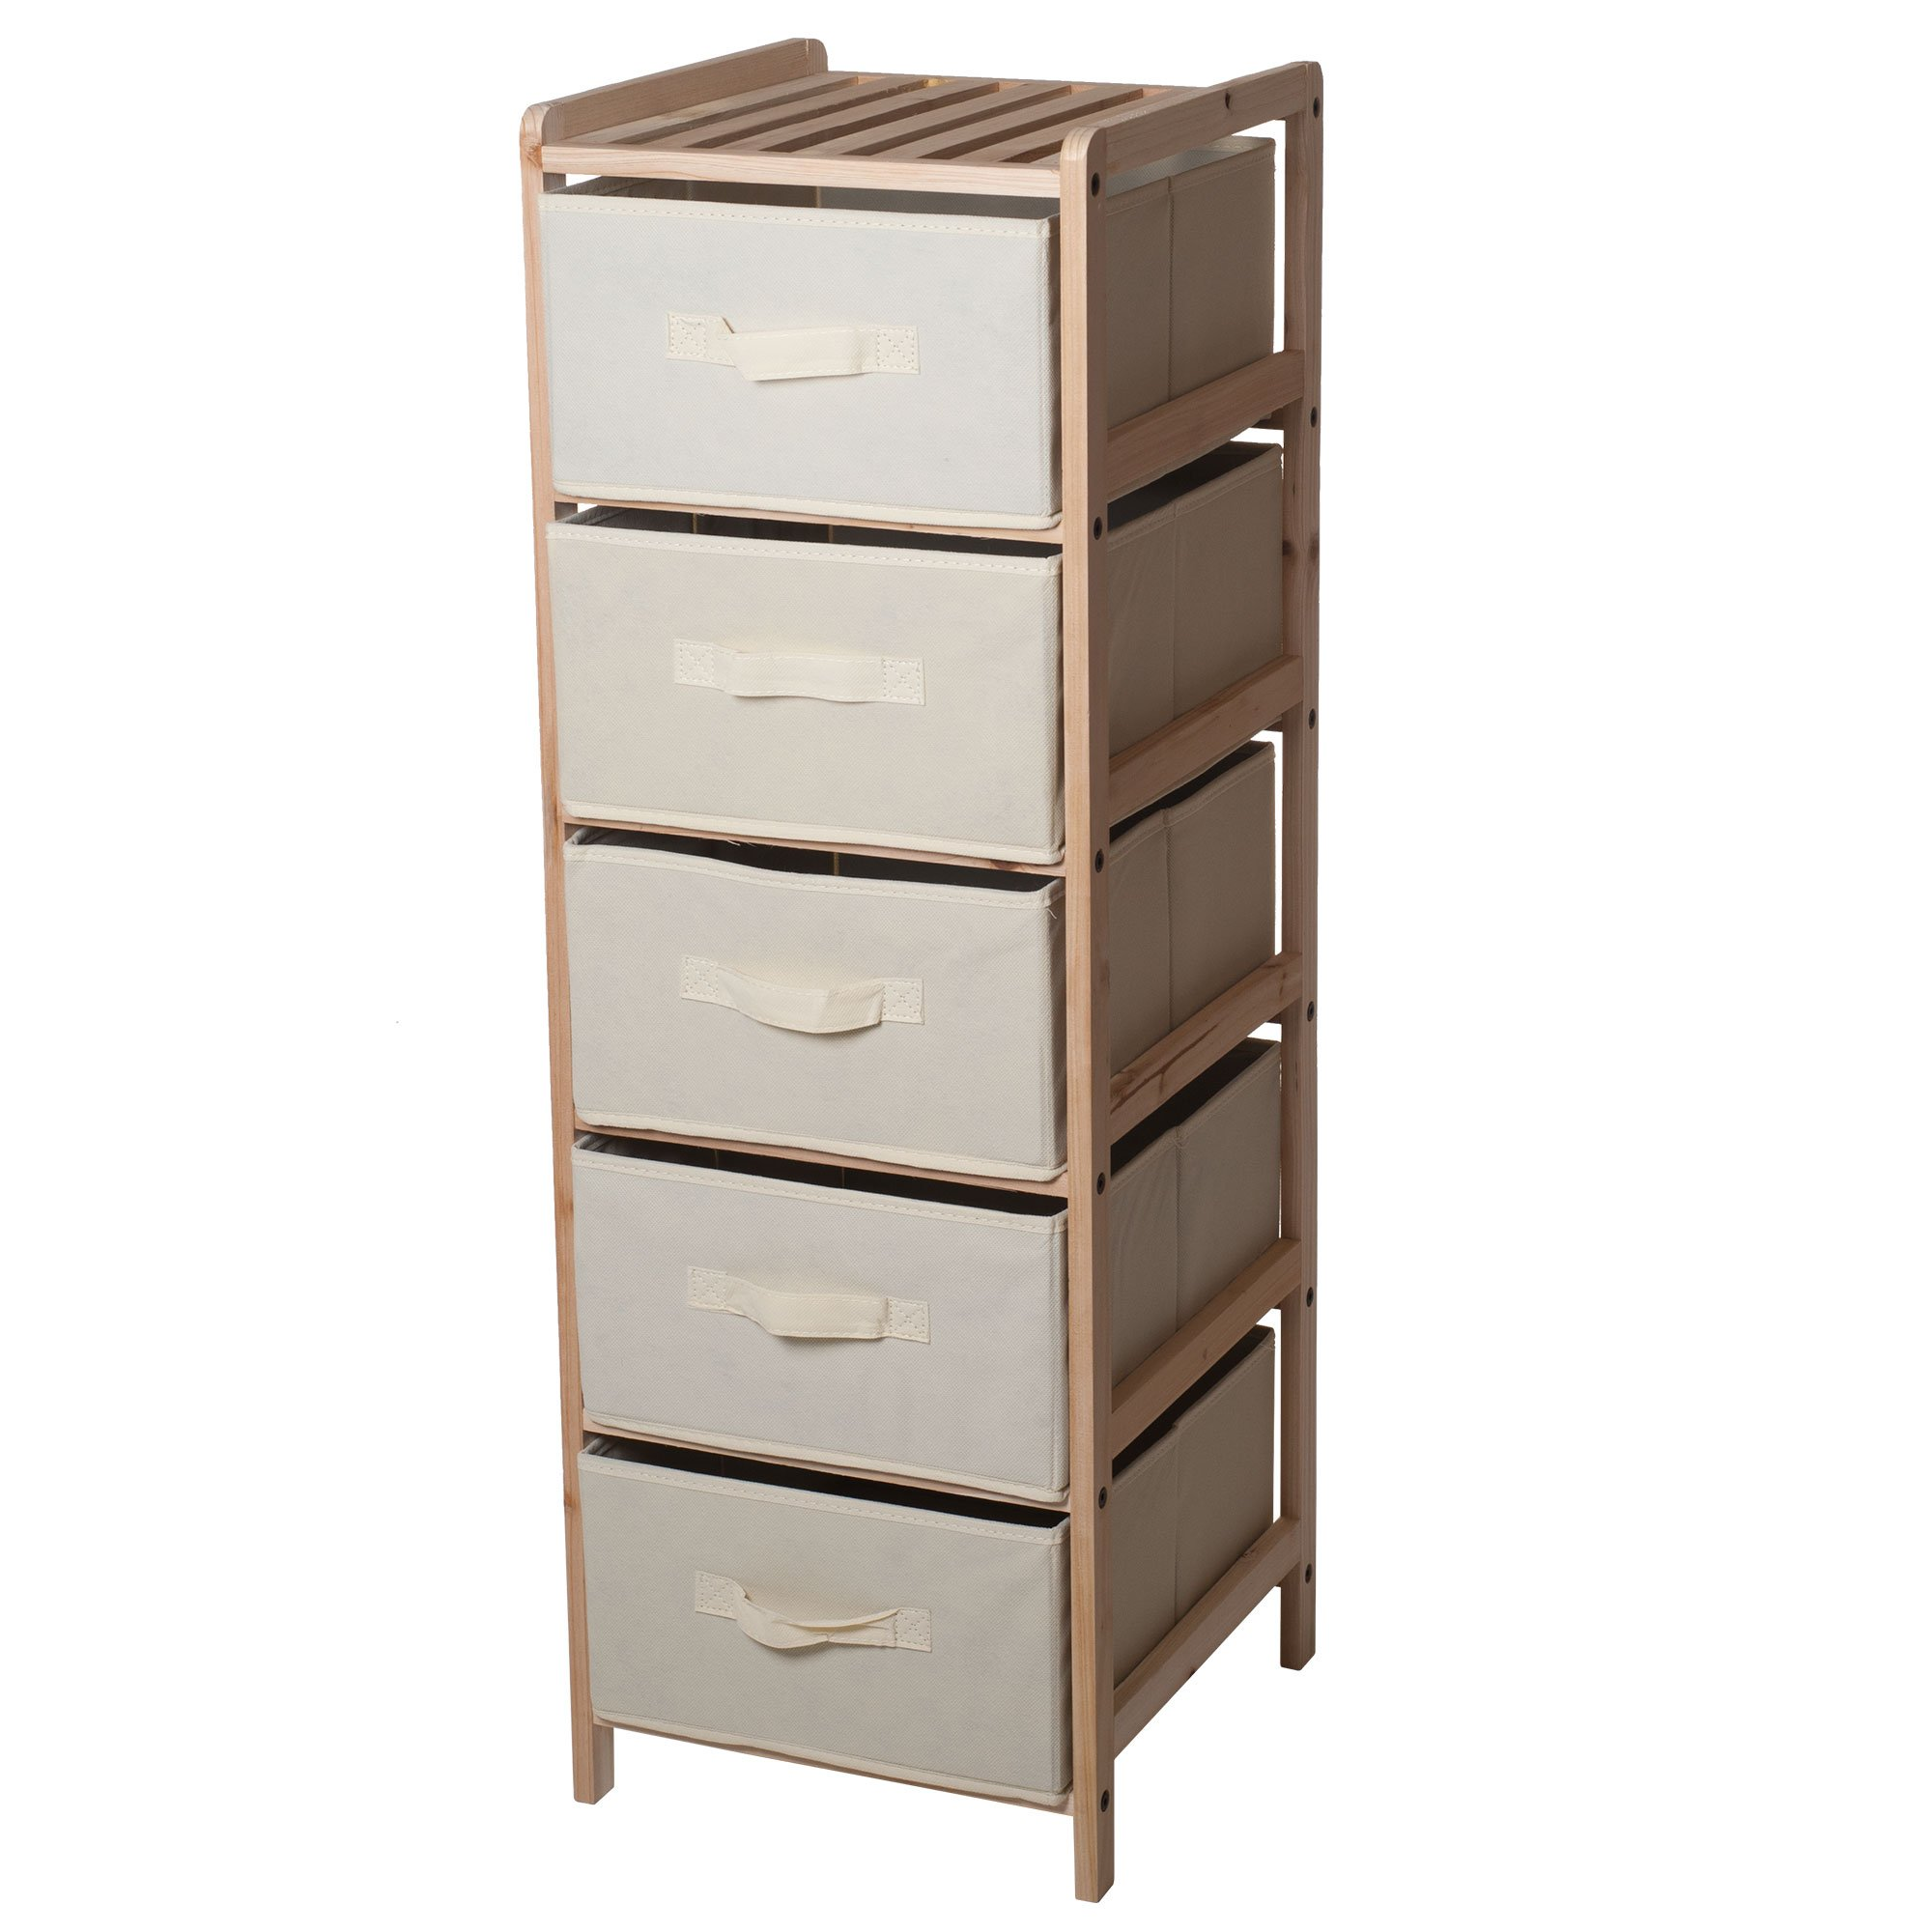 Lavish Home Organization Drawers with Natural Wood Shelf and Five Fabric Storage Bins- Lightweight and Perfect for Dorms, Bathrooms or Bedrooms